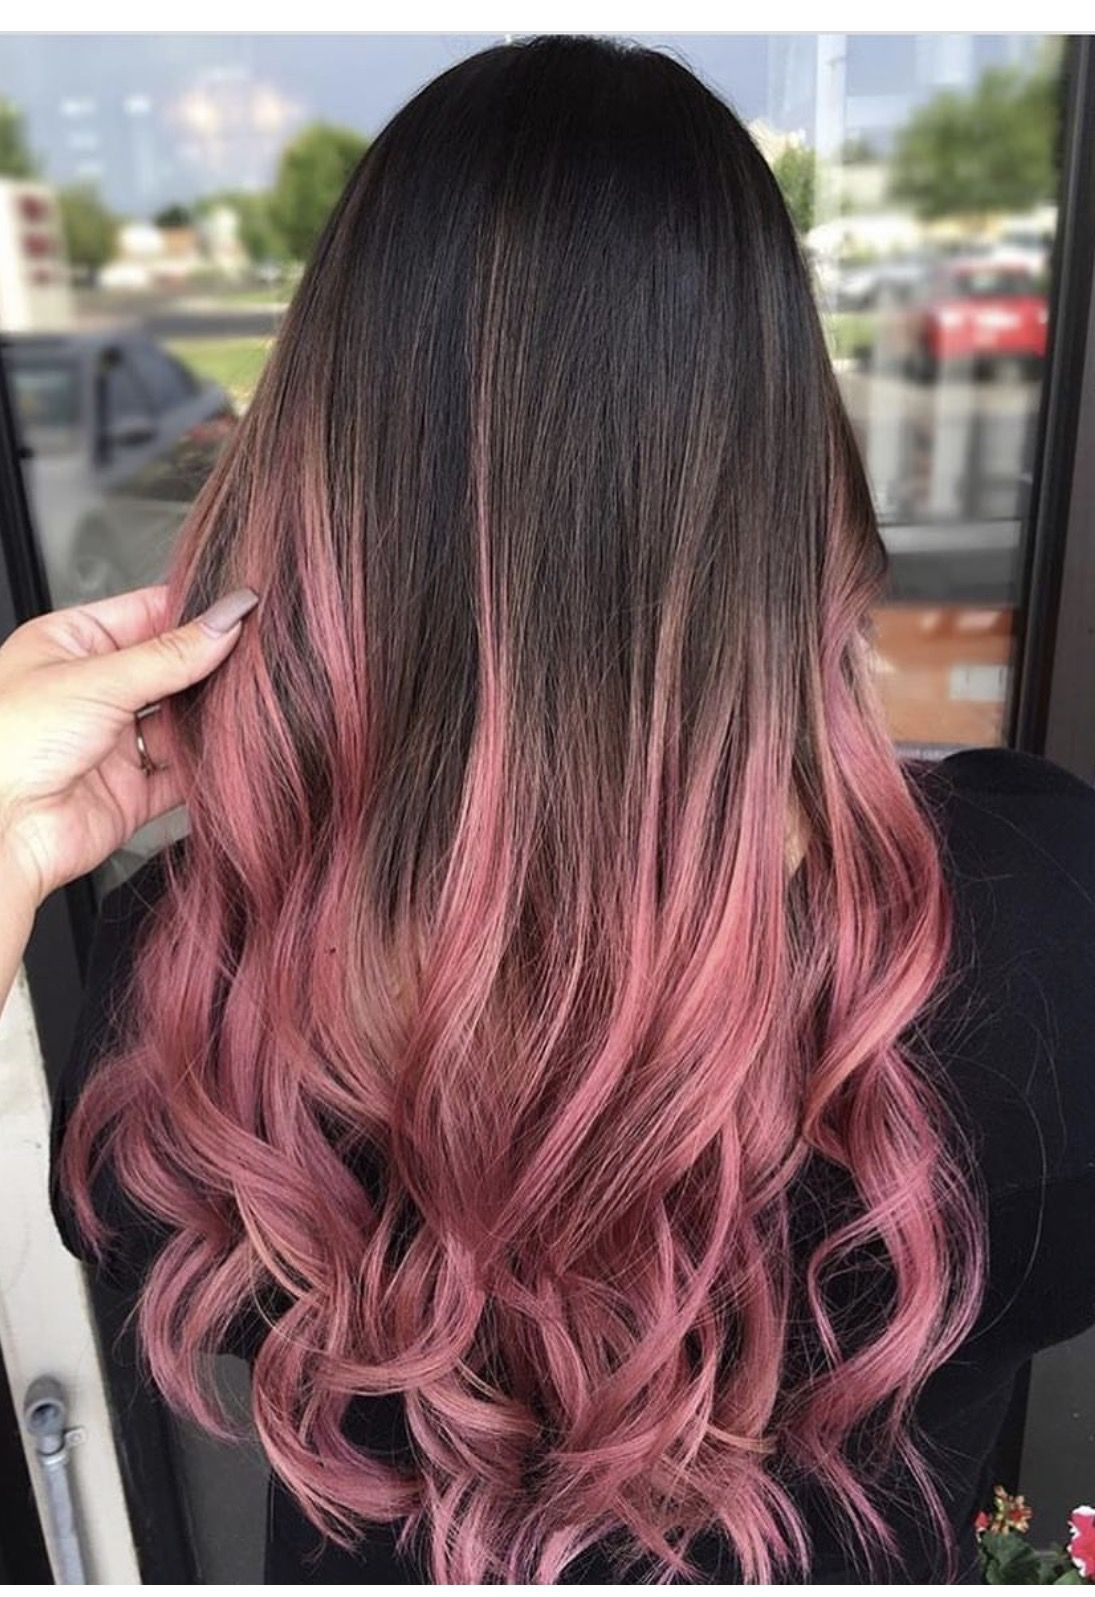 Pin By Goodnight Lovey On Rock The Locks Hair Dye Tips Aesthetic Hair Peach Hair